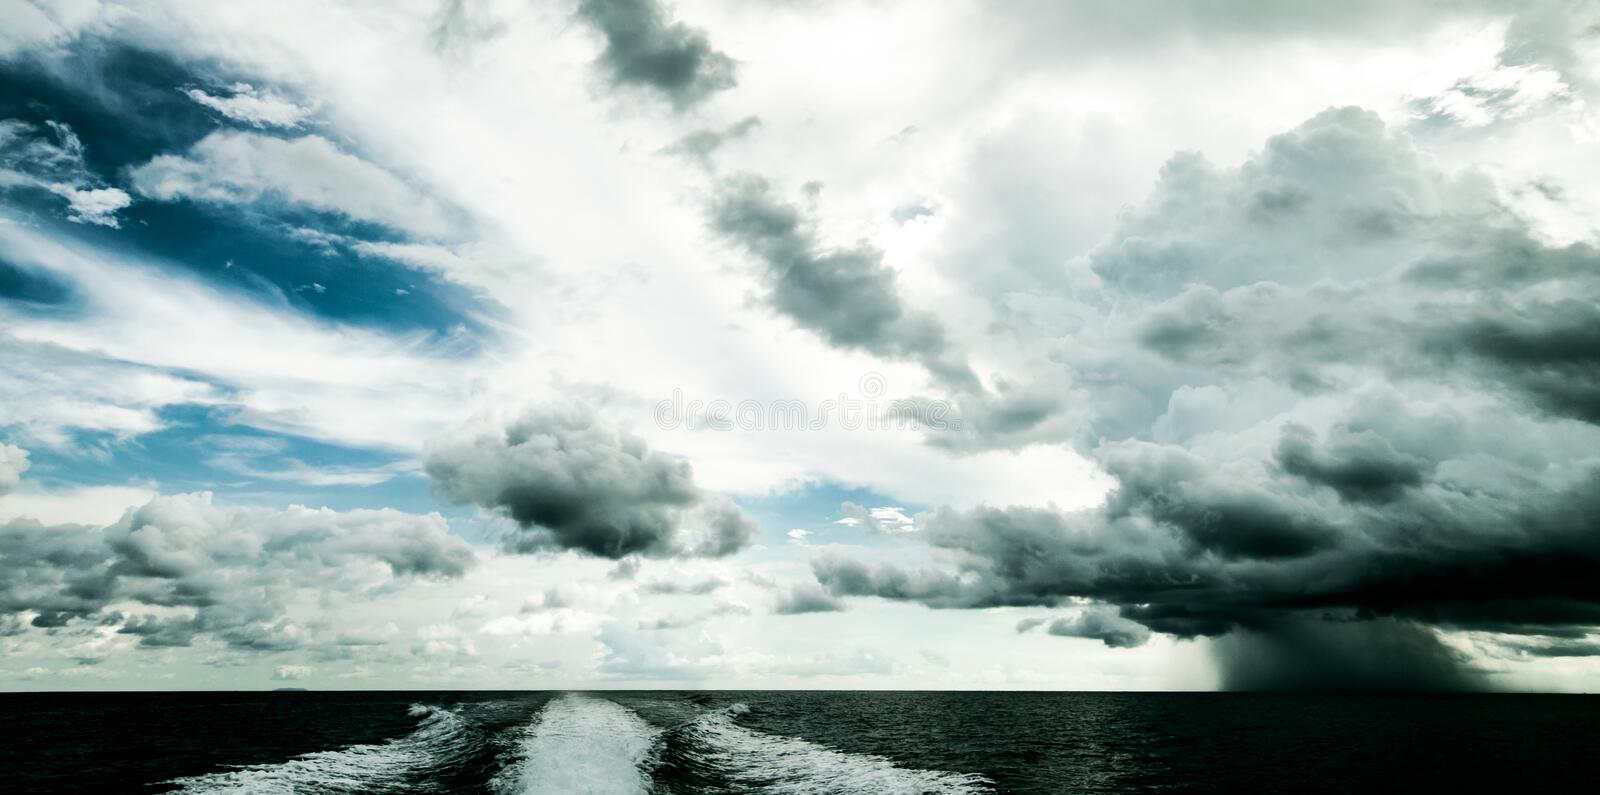 Tropical hurricane from motor boat stock images